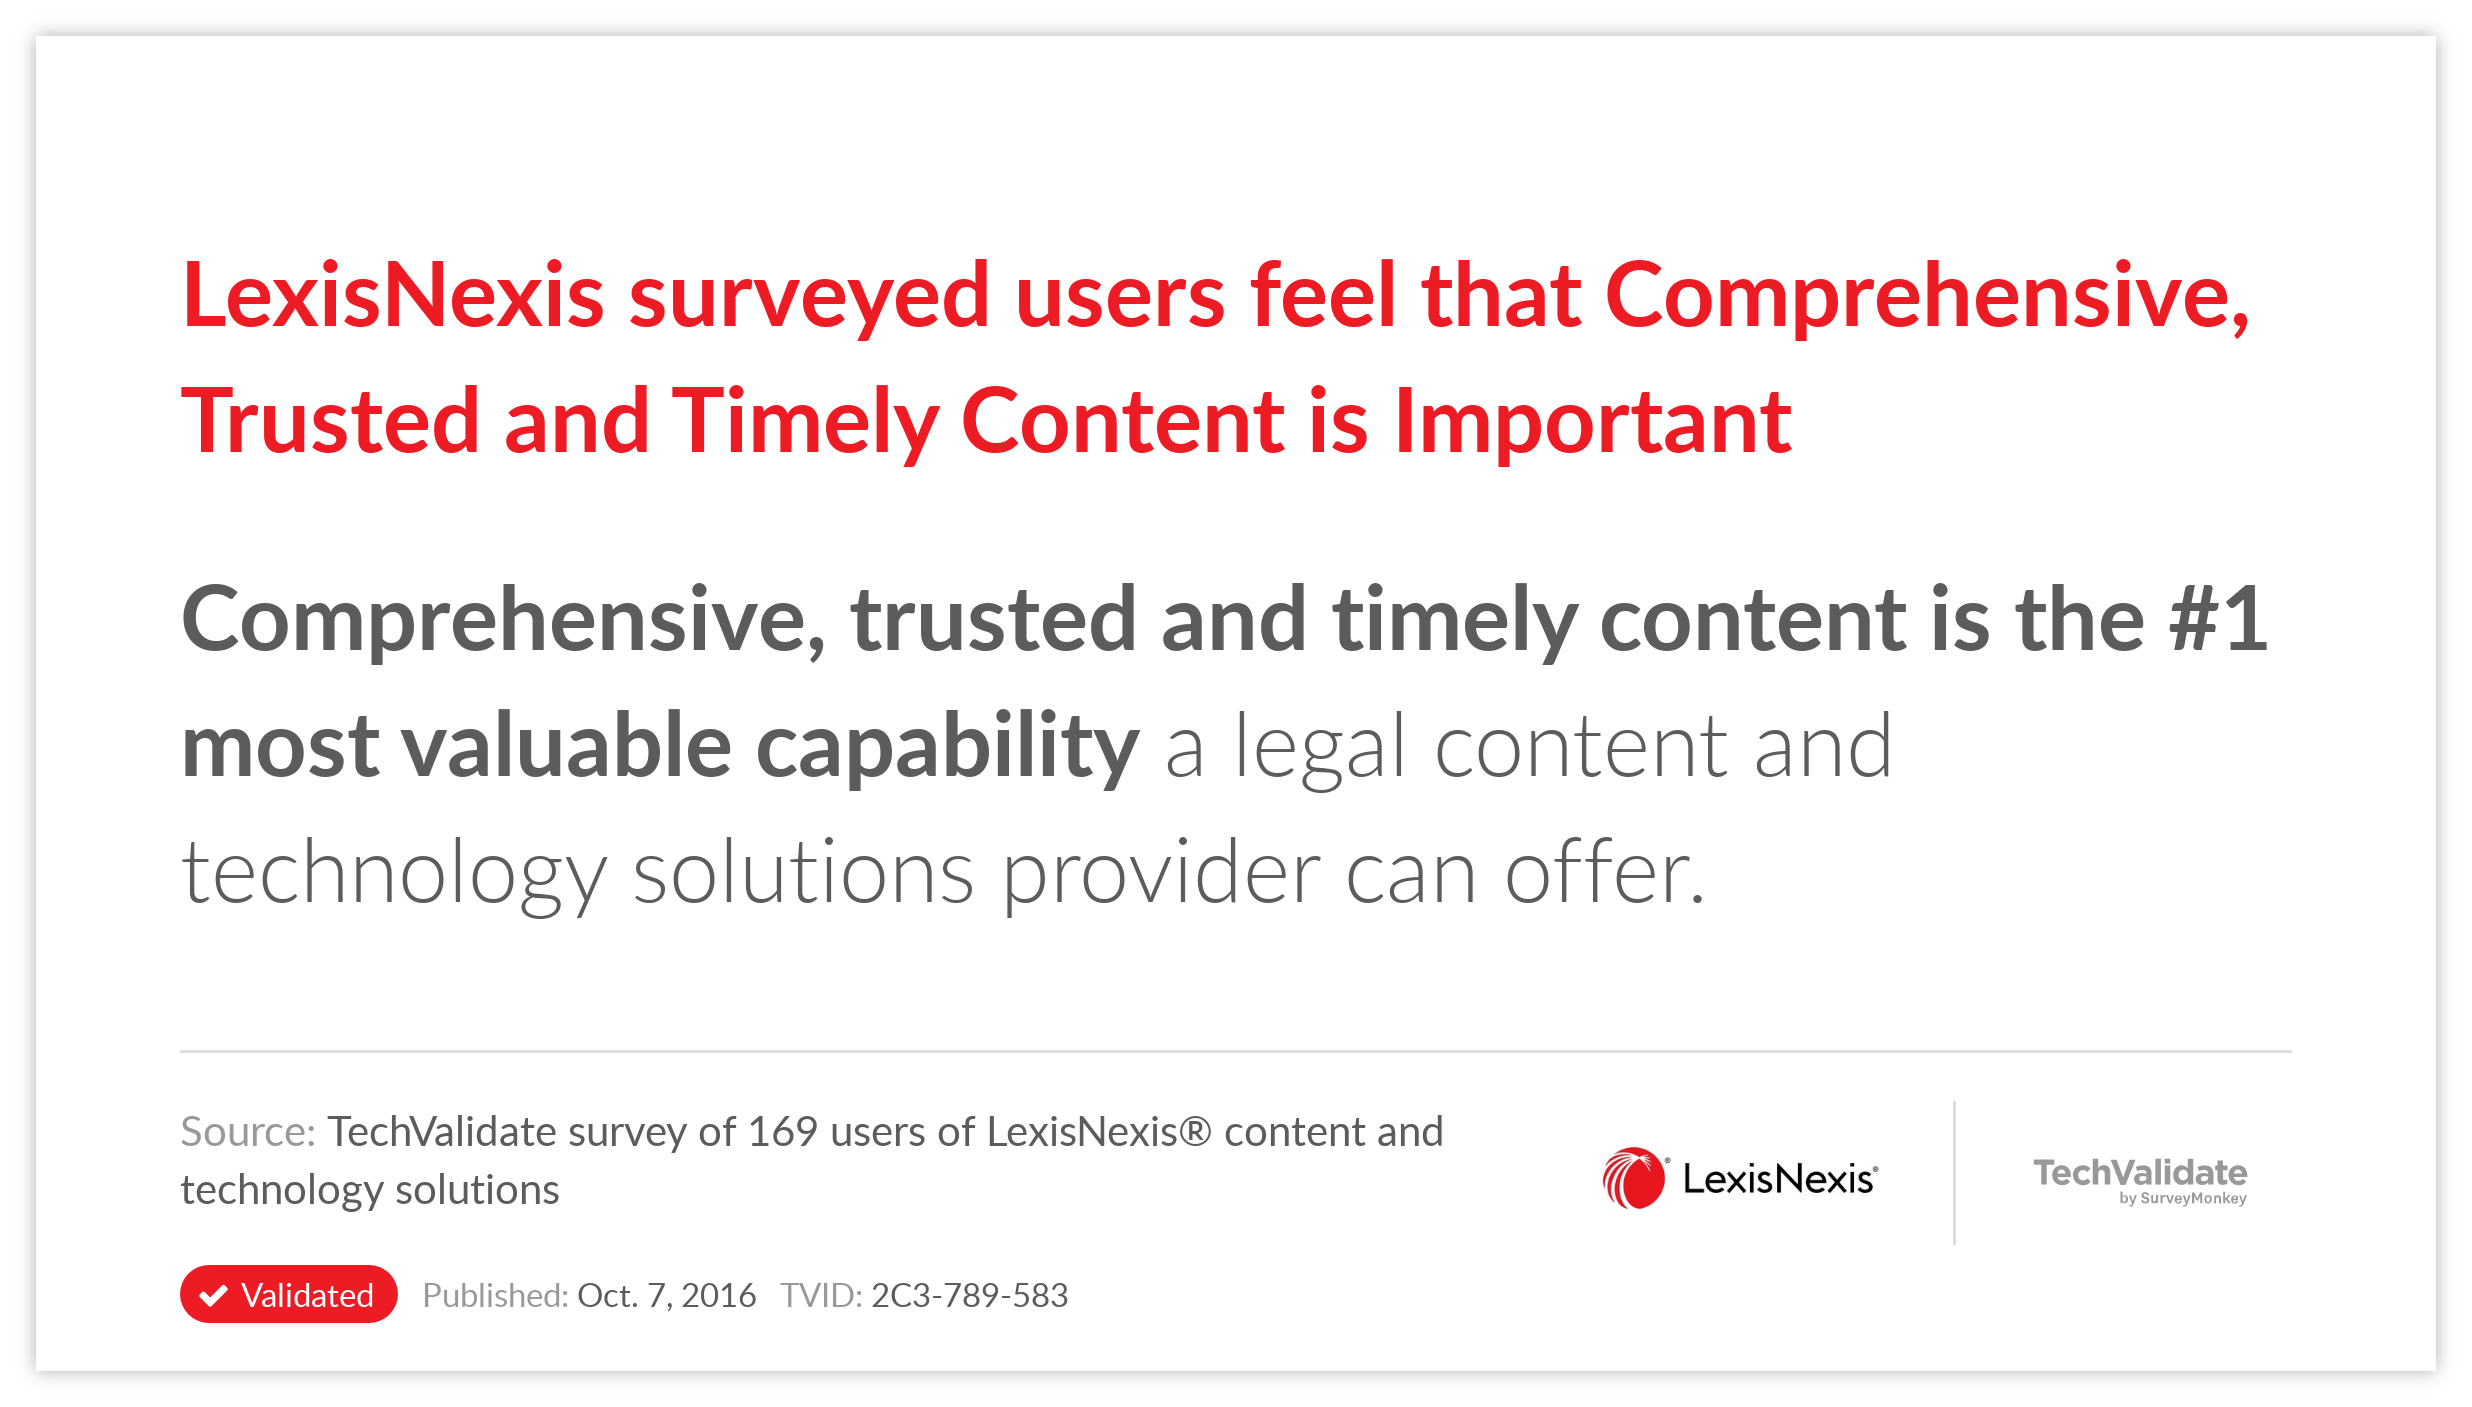 LexisNexis surveyed users feel that Comprehensive, Trusted and Timely Content is Important